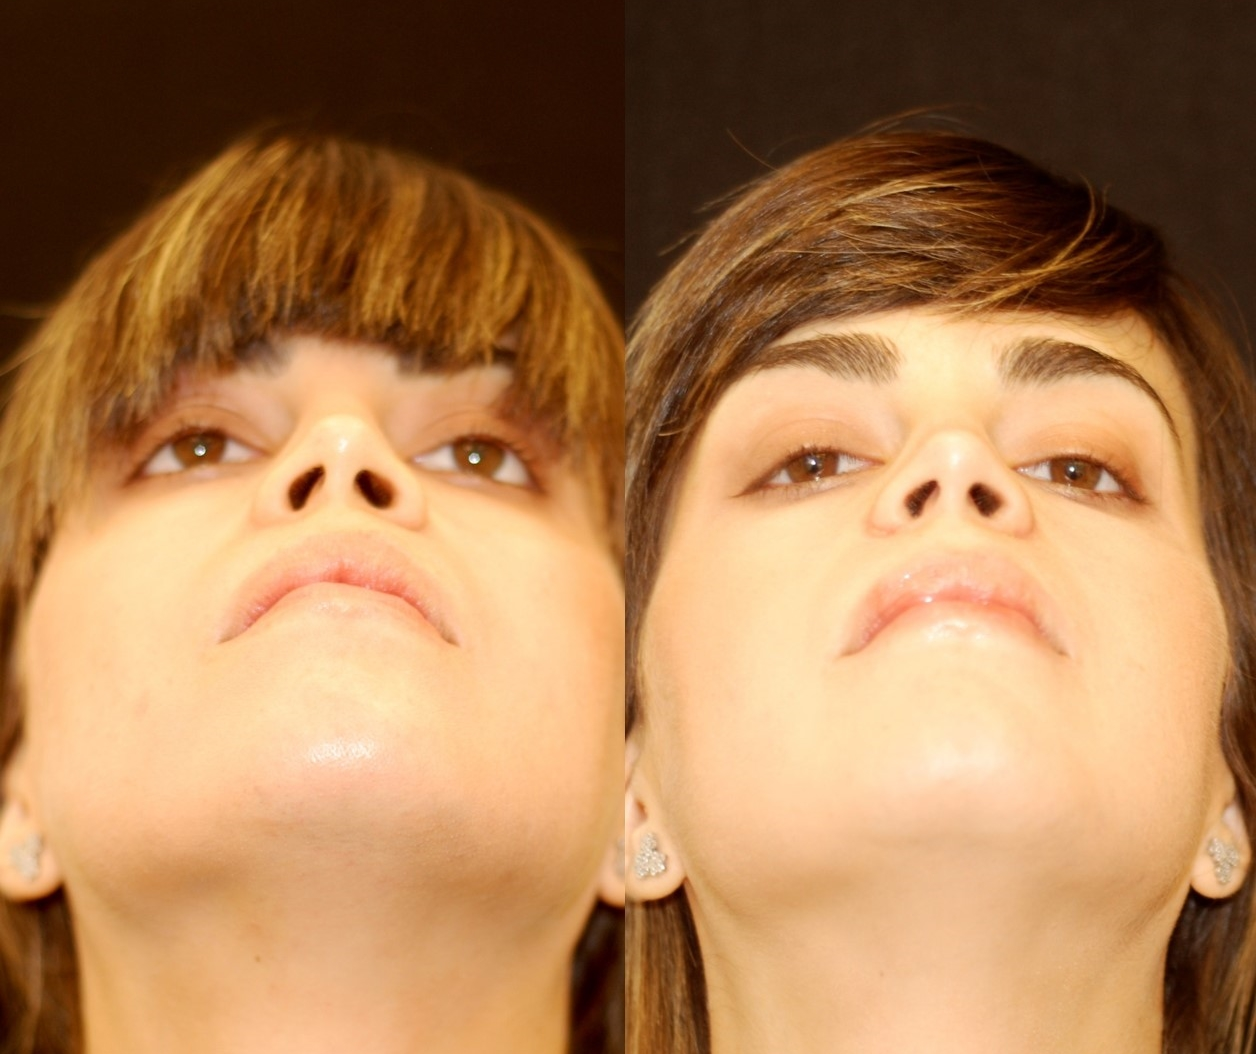 Actual patient of Dr. Devgan, before and 3 weeks after alar base reduction rhinoplasty